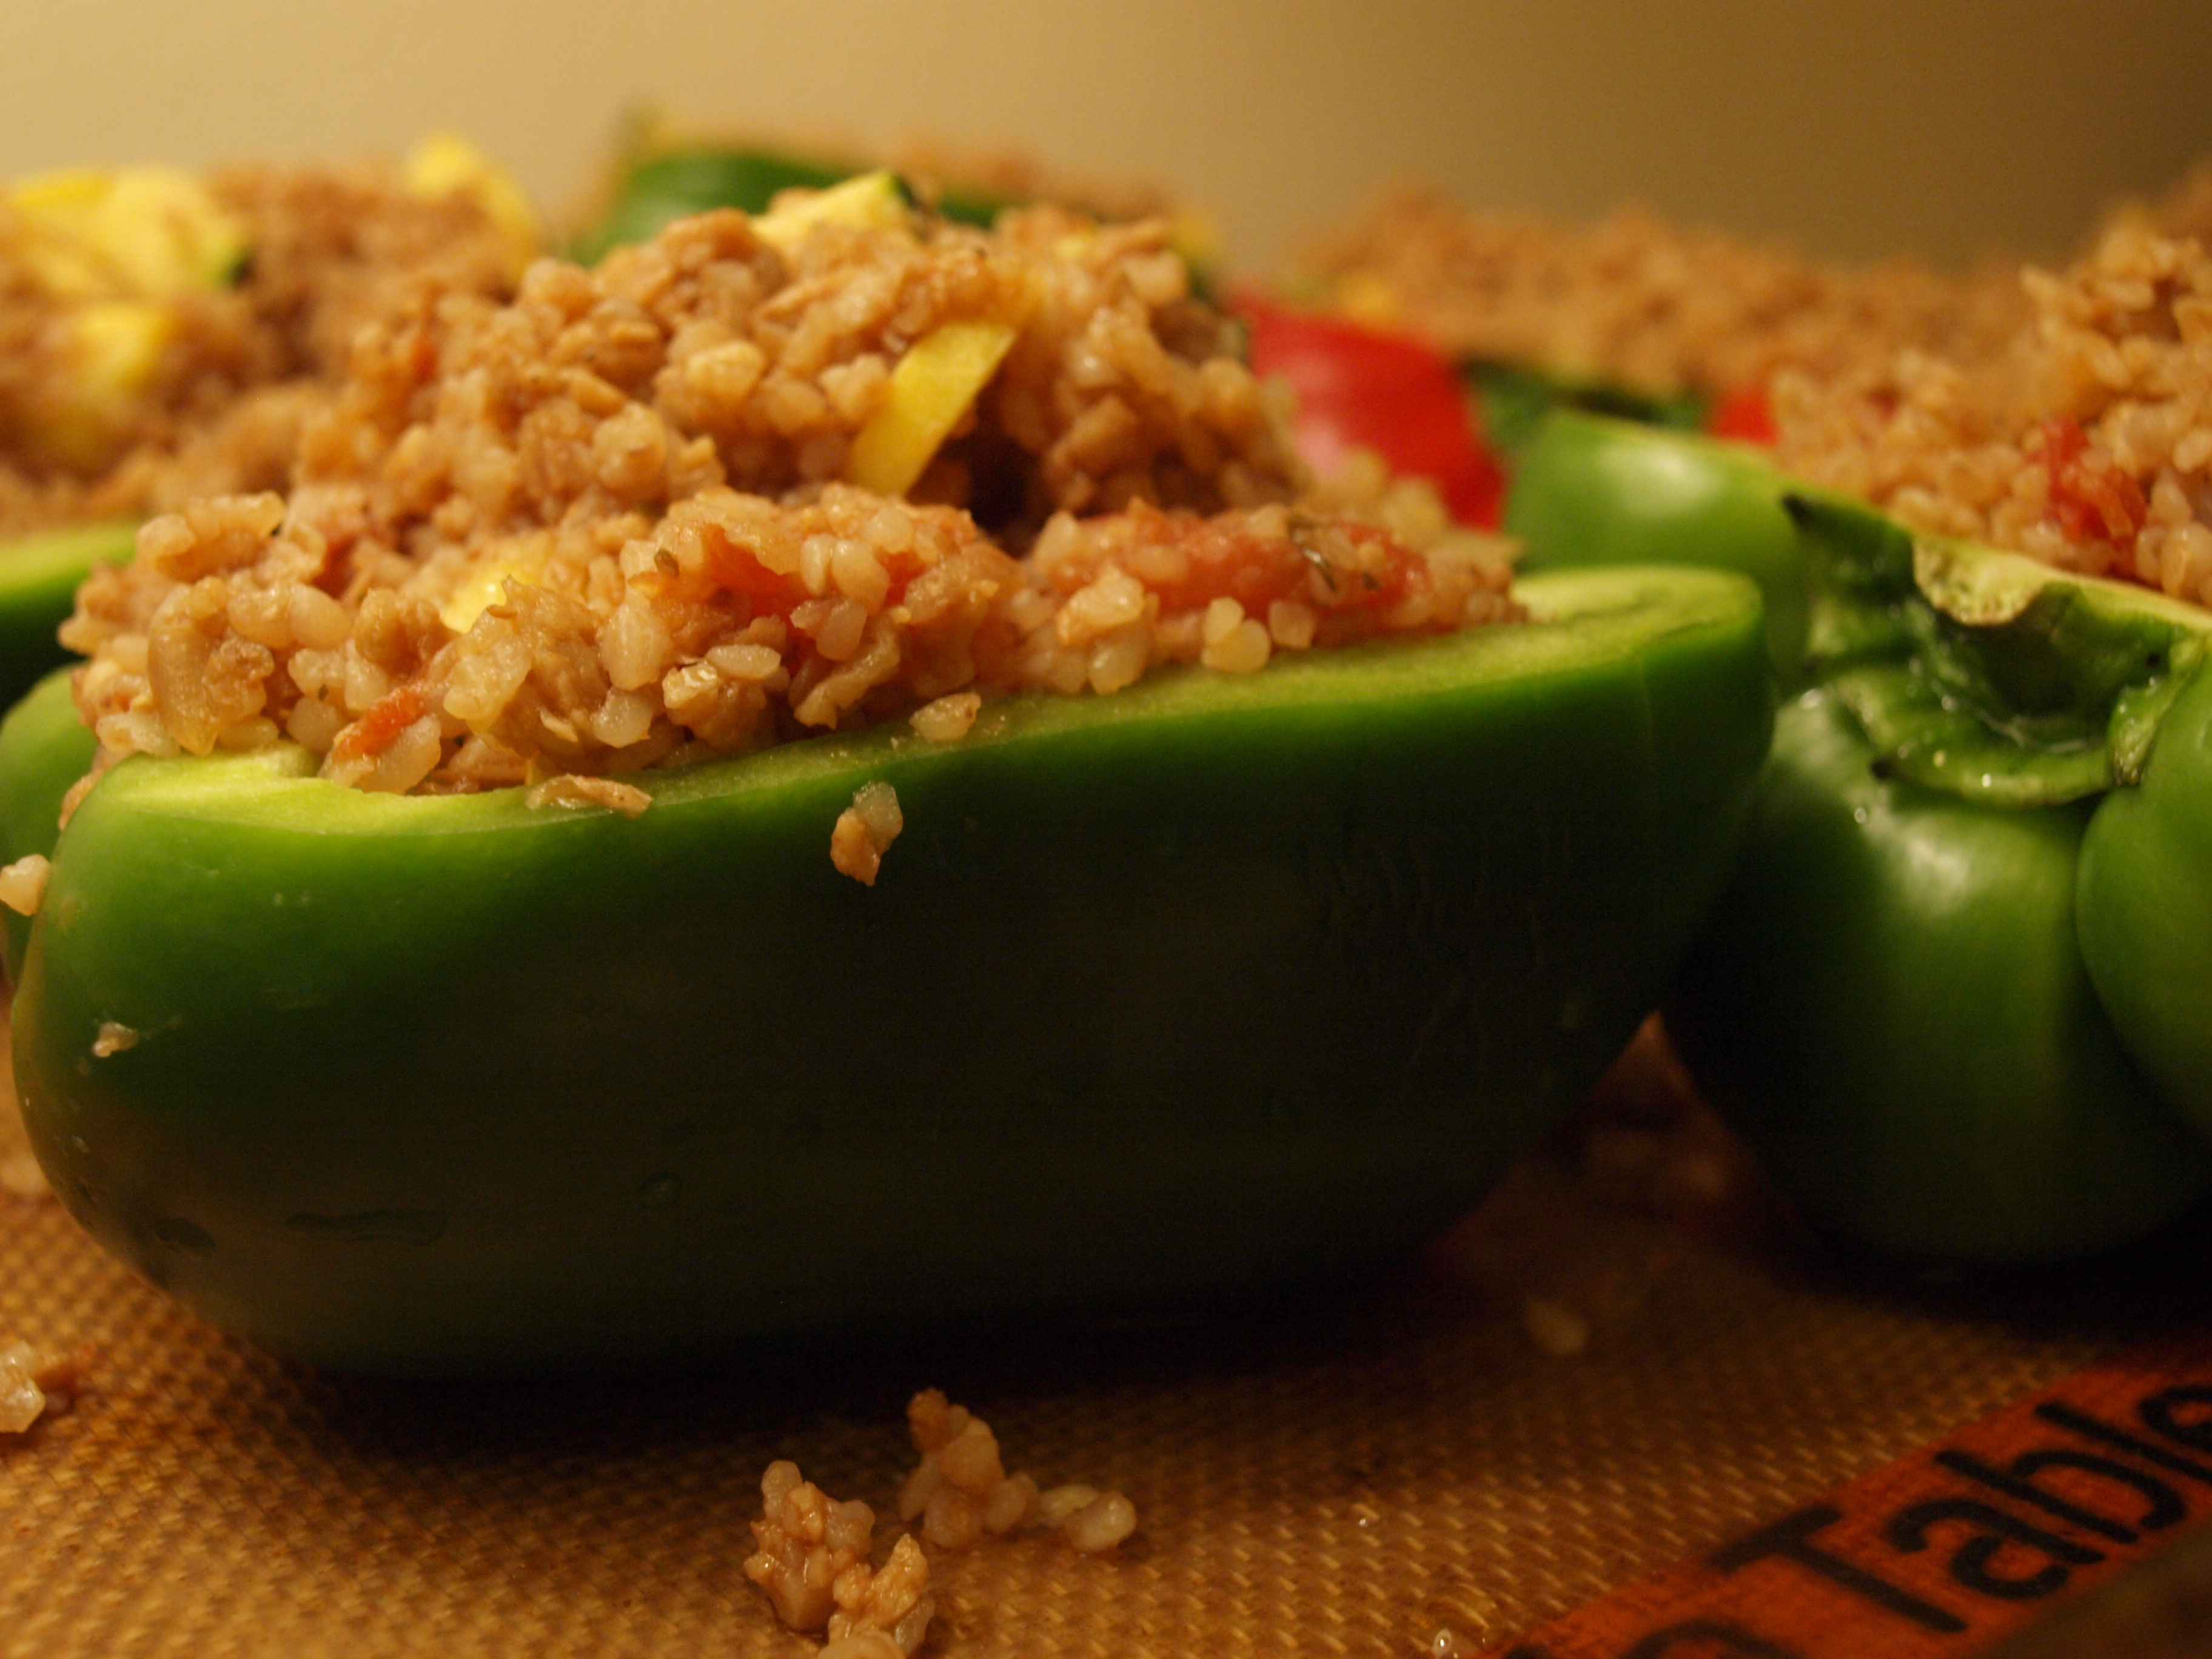 Stuffed green pepper with kasha